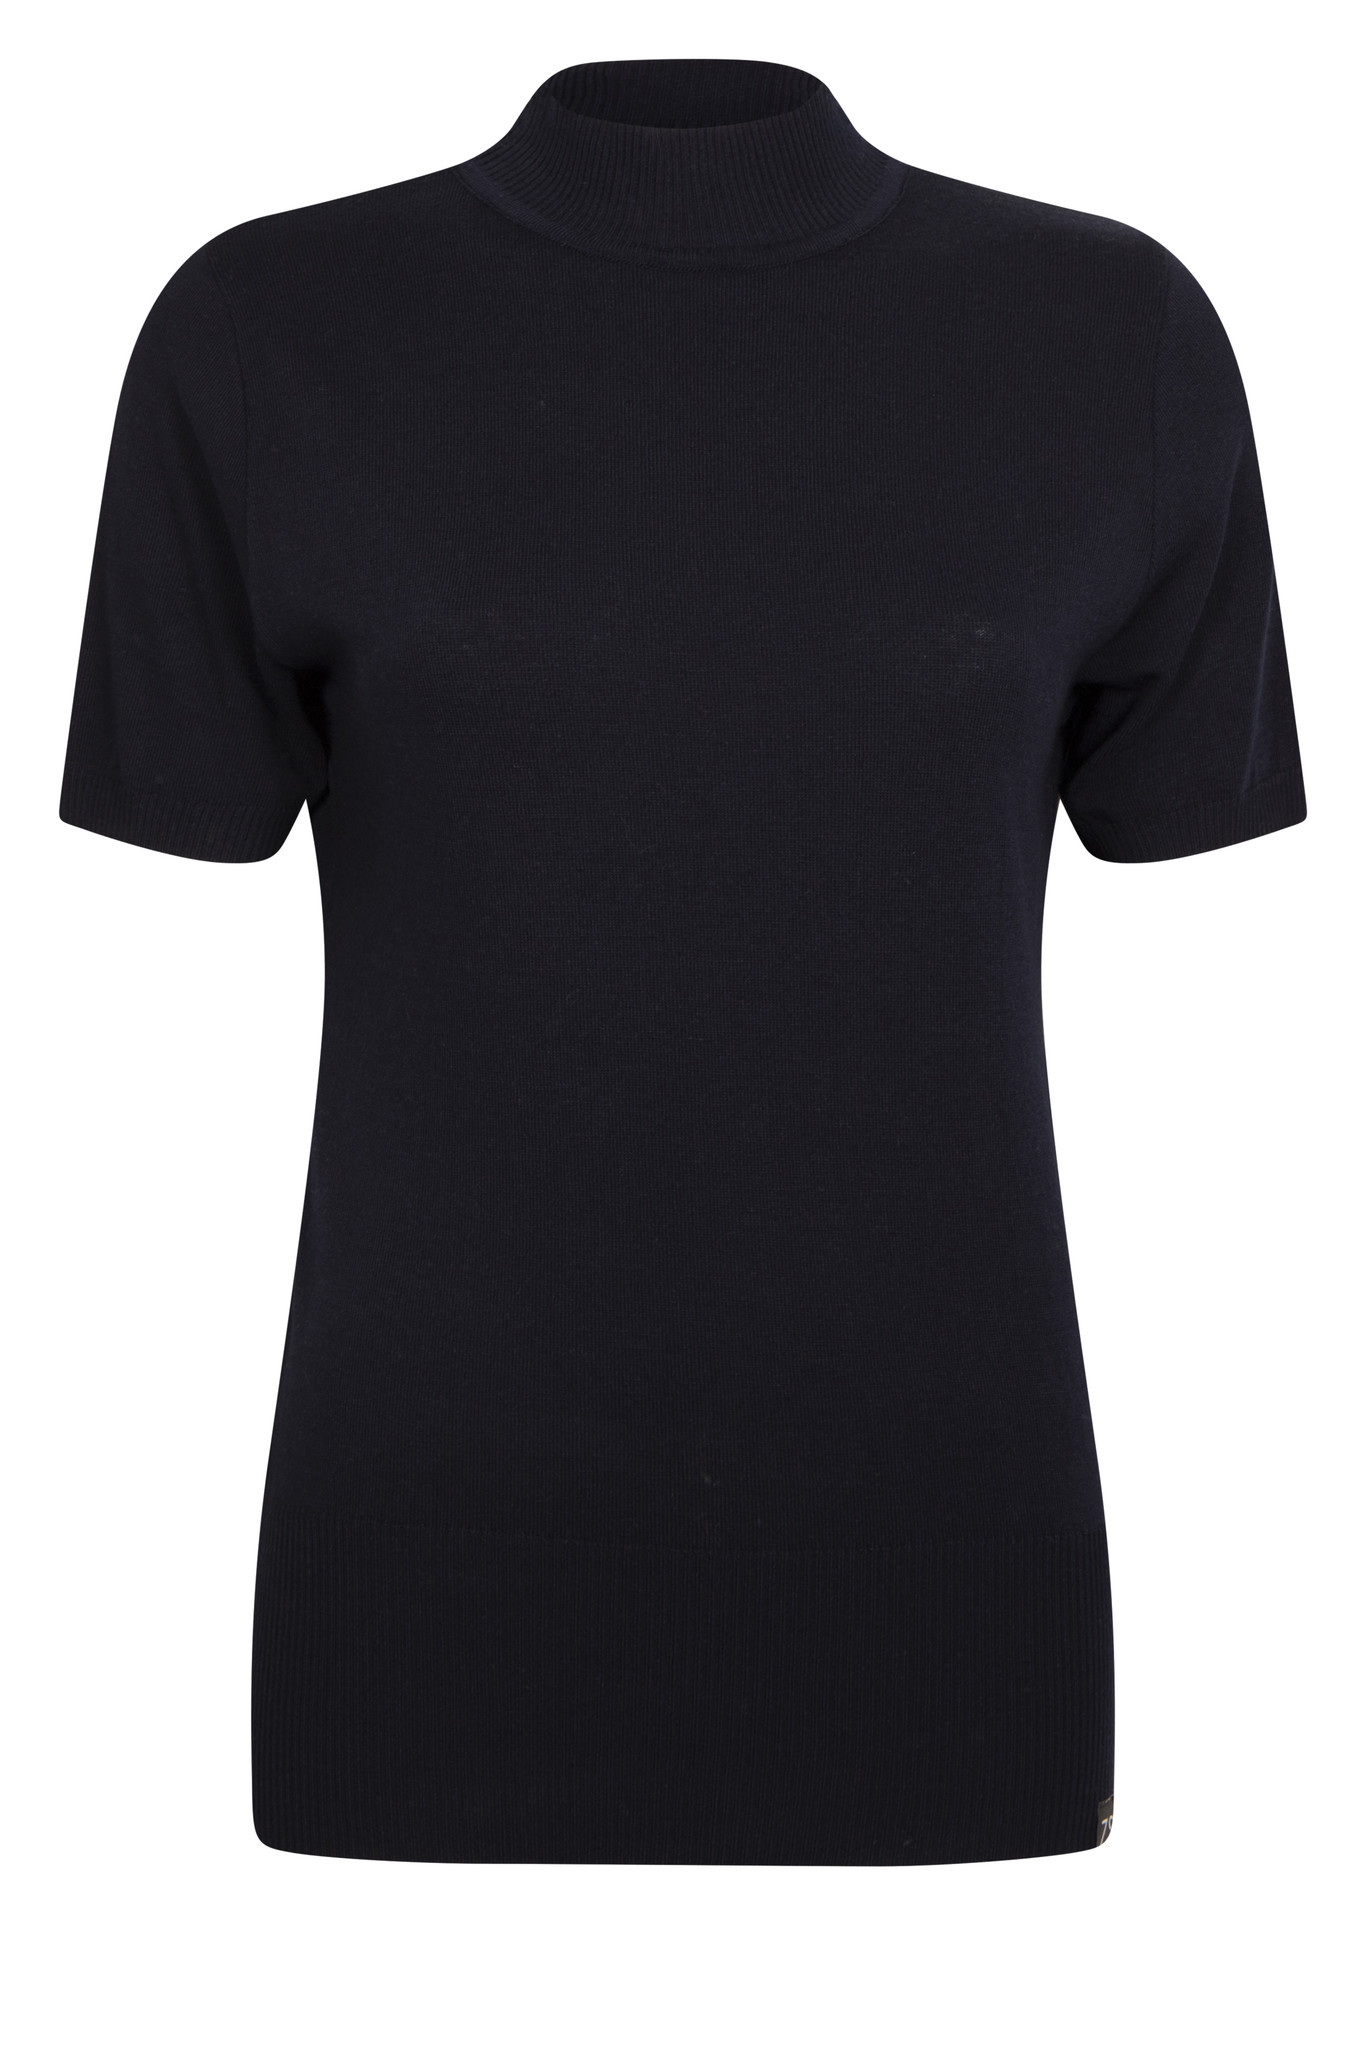 Zoso Zoso trui Marnix Luxury knit short sleeve pull navy